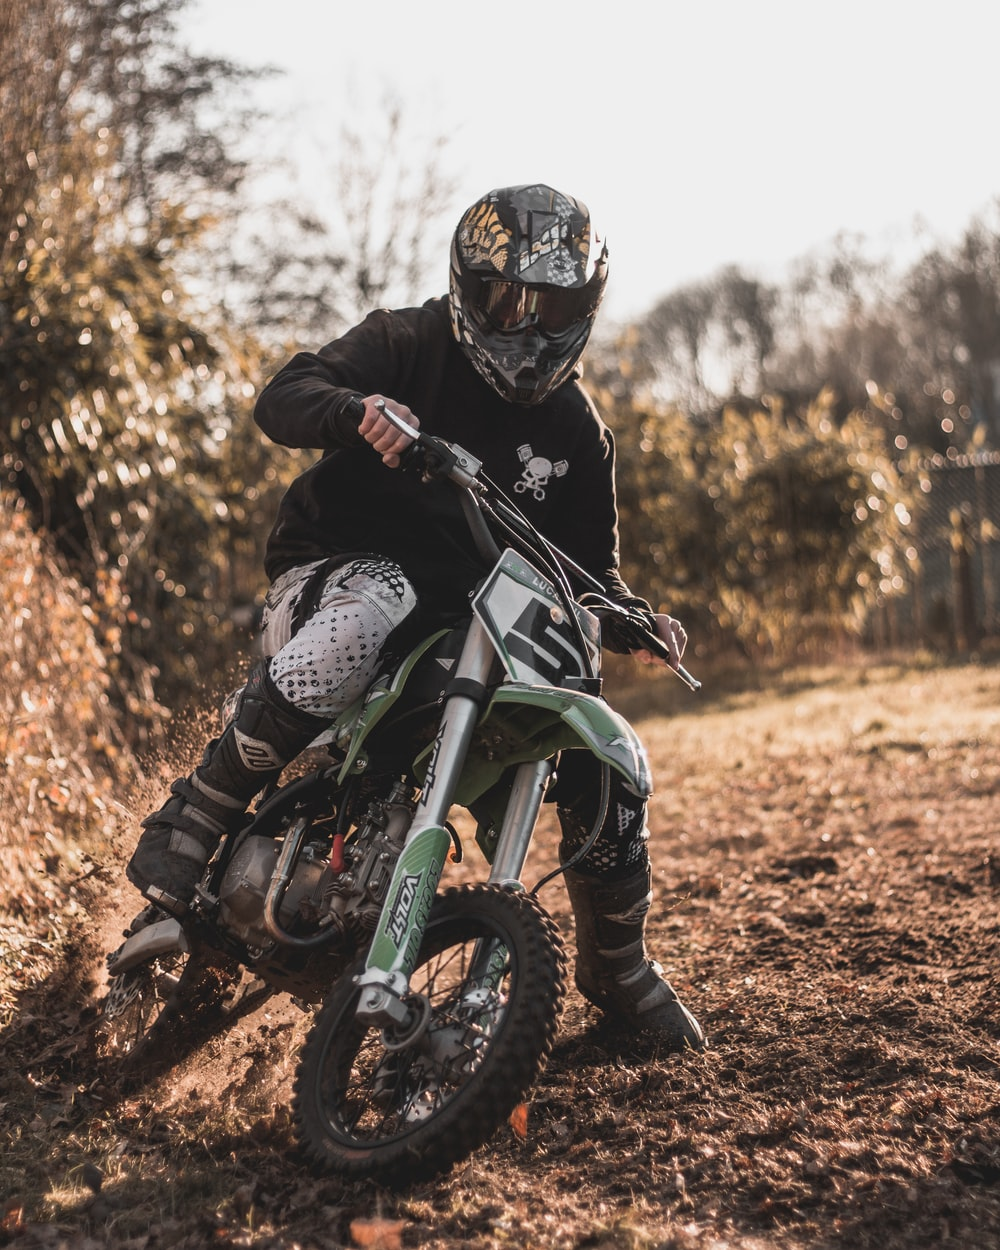 man riding dirt bike during daytime